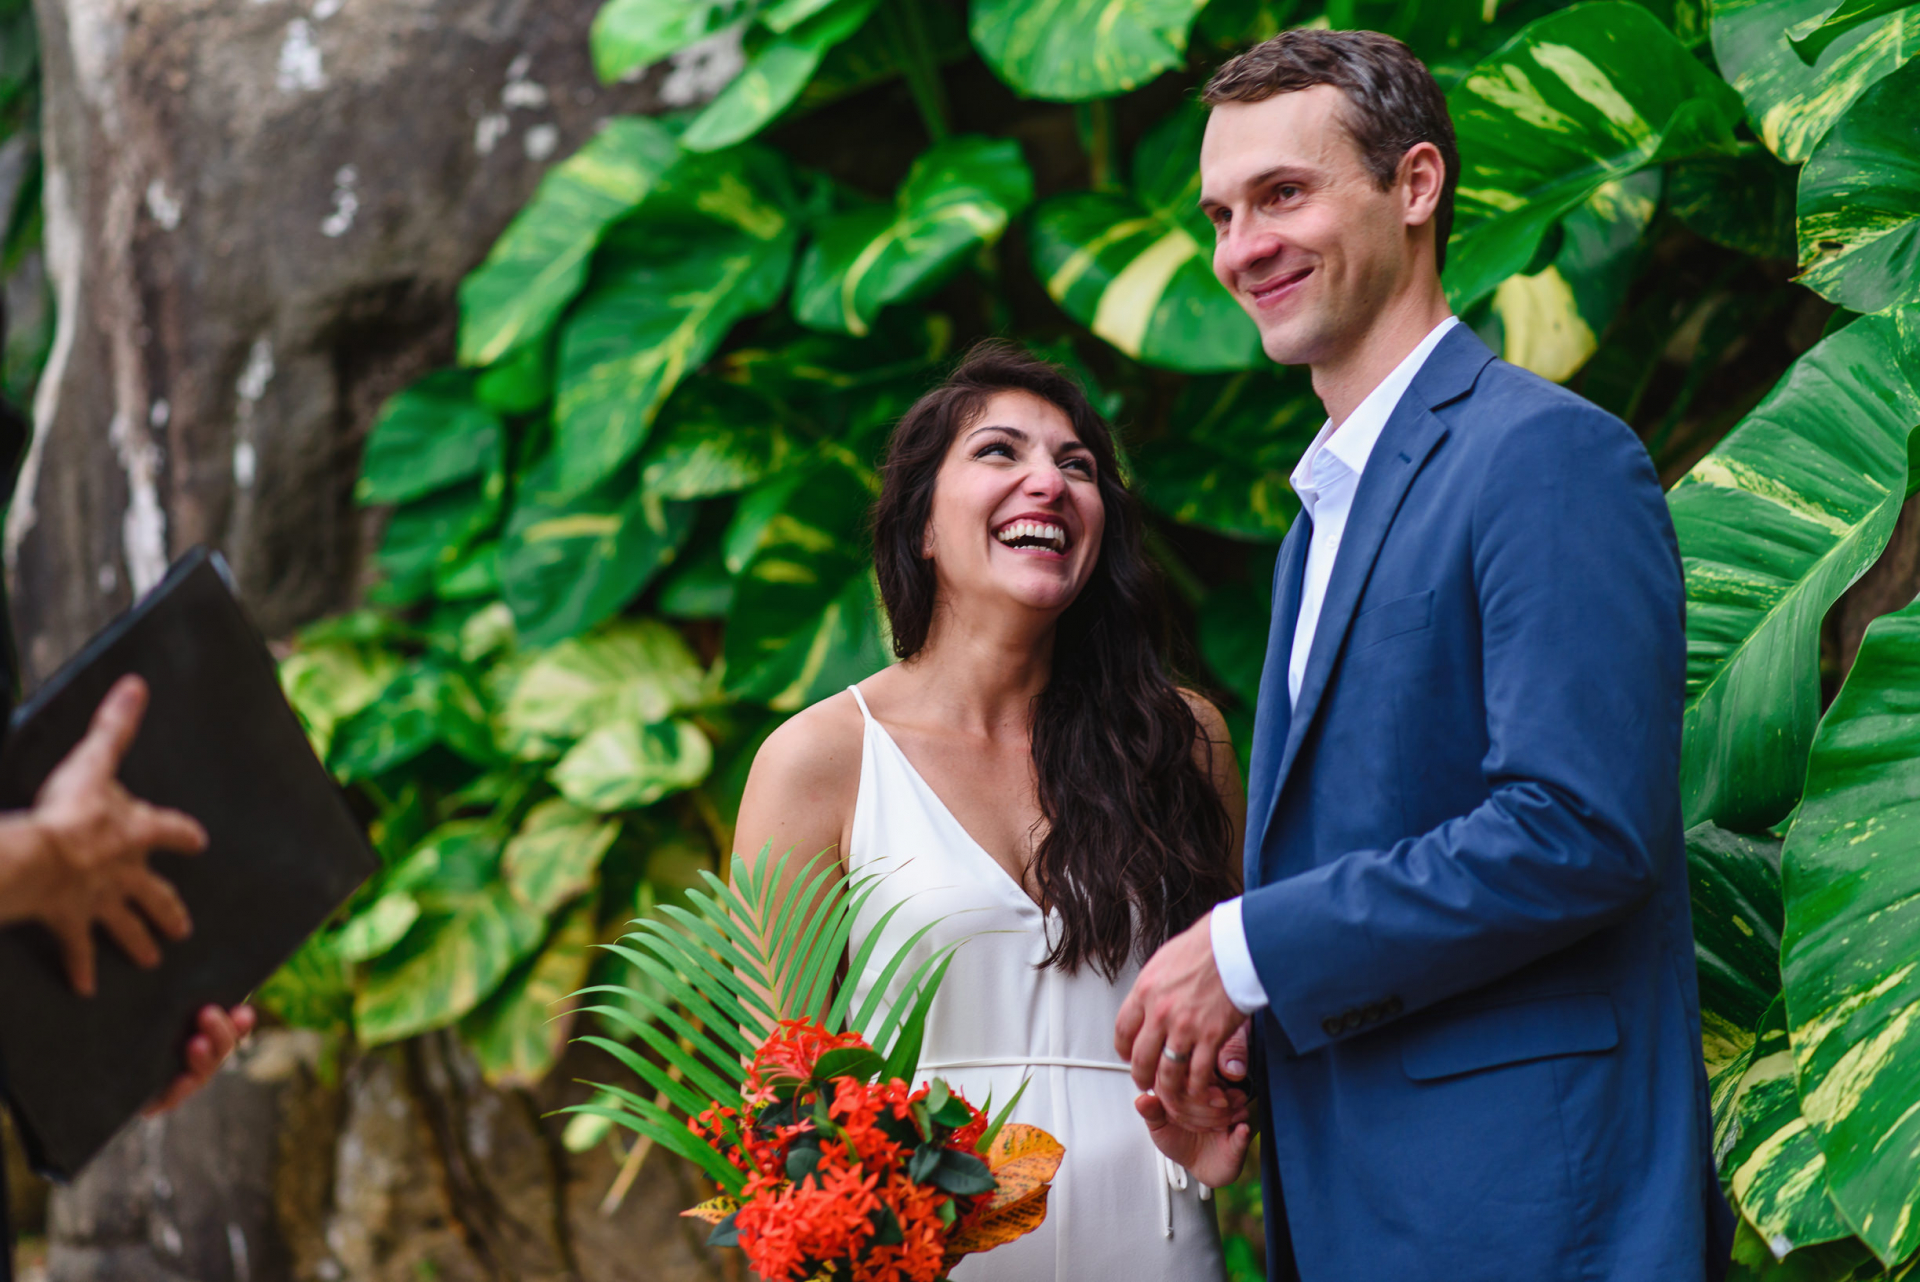 Yelapa, Mexico Bride and Groom Elopement Images | The pair laughs and smiles during the ceremony. They're truly enjoying themselves, surrounded by tropical flora. Even the bride's bouquet sports some lovely orange tropical flowers